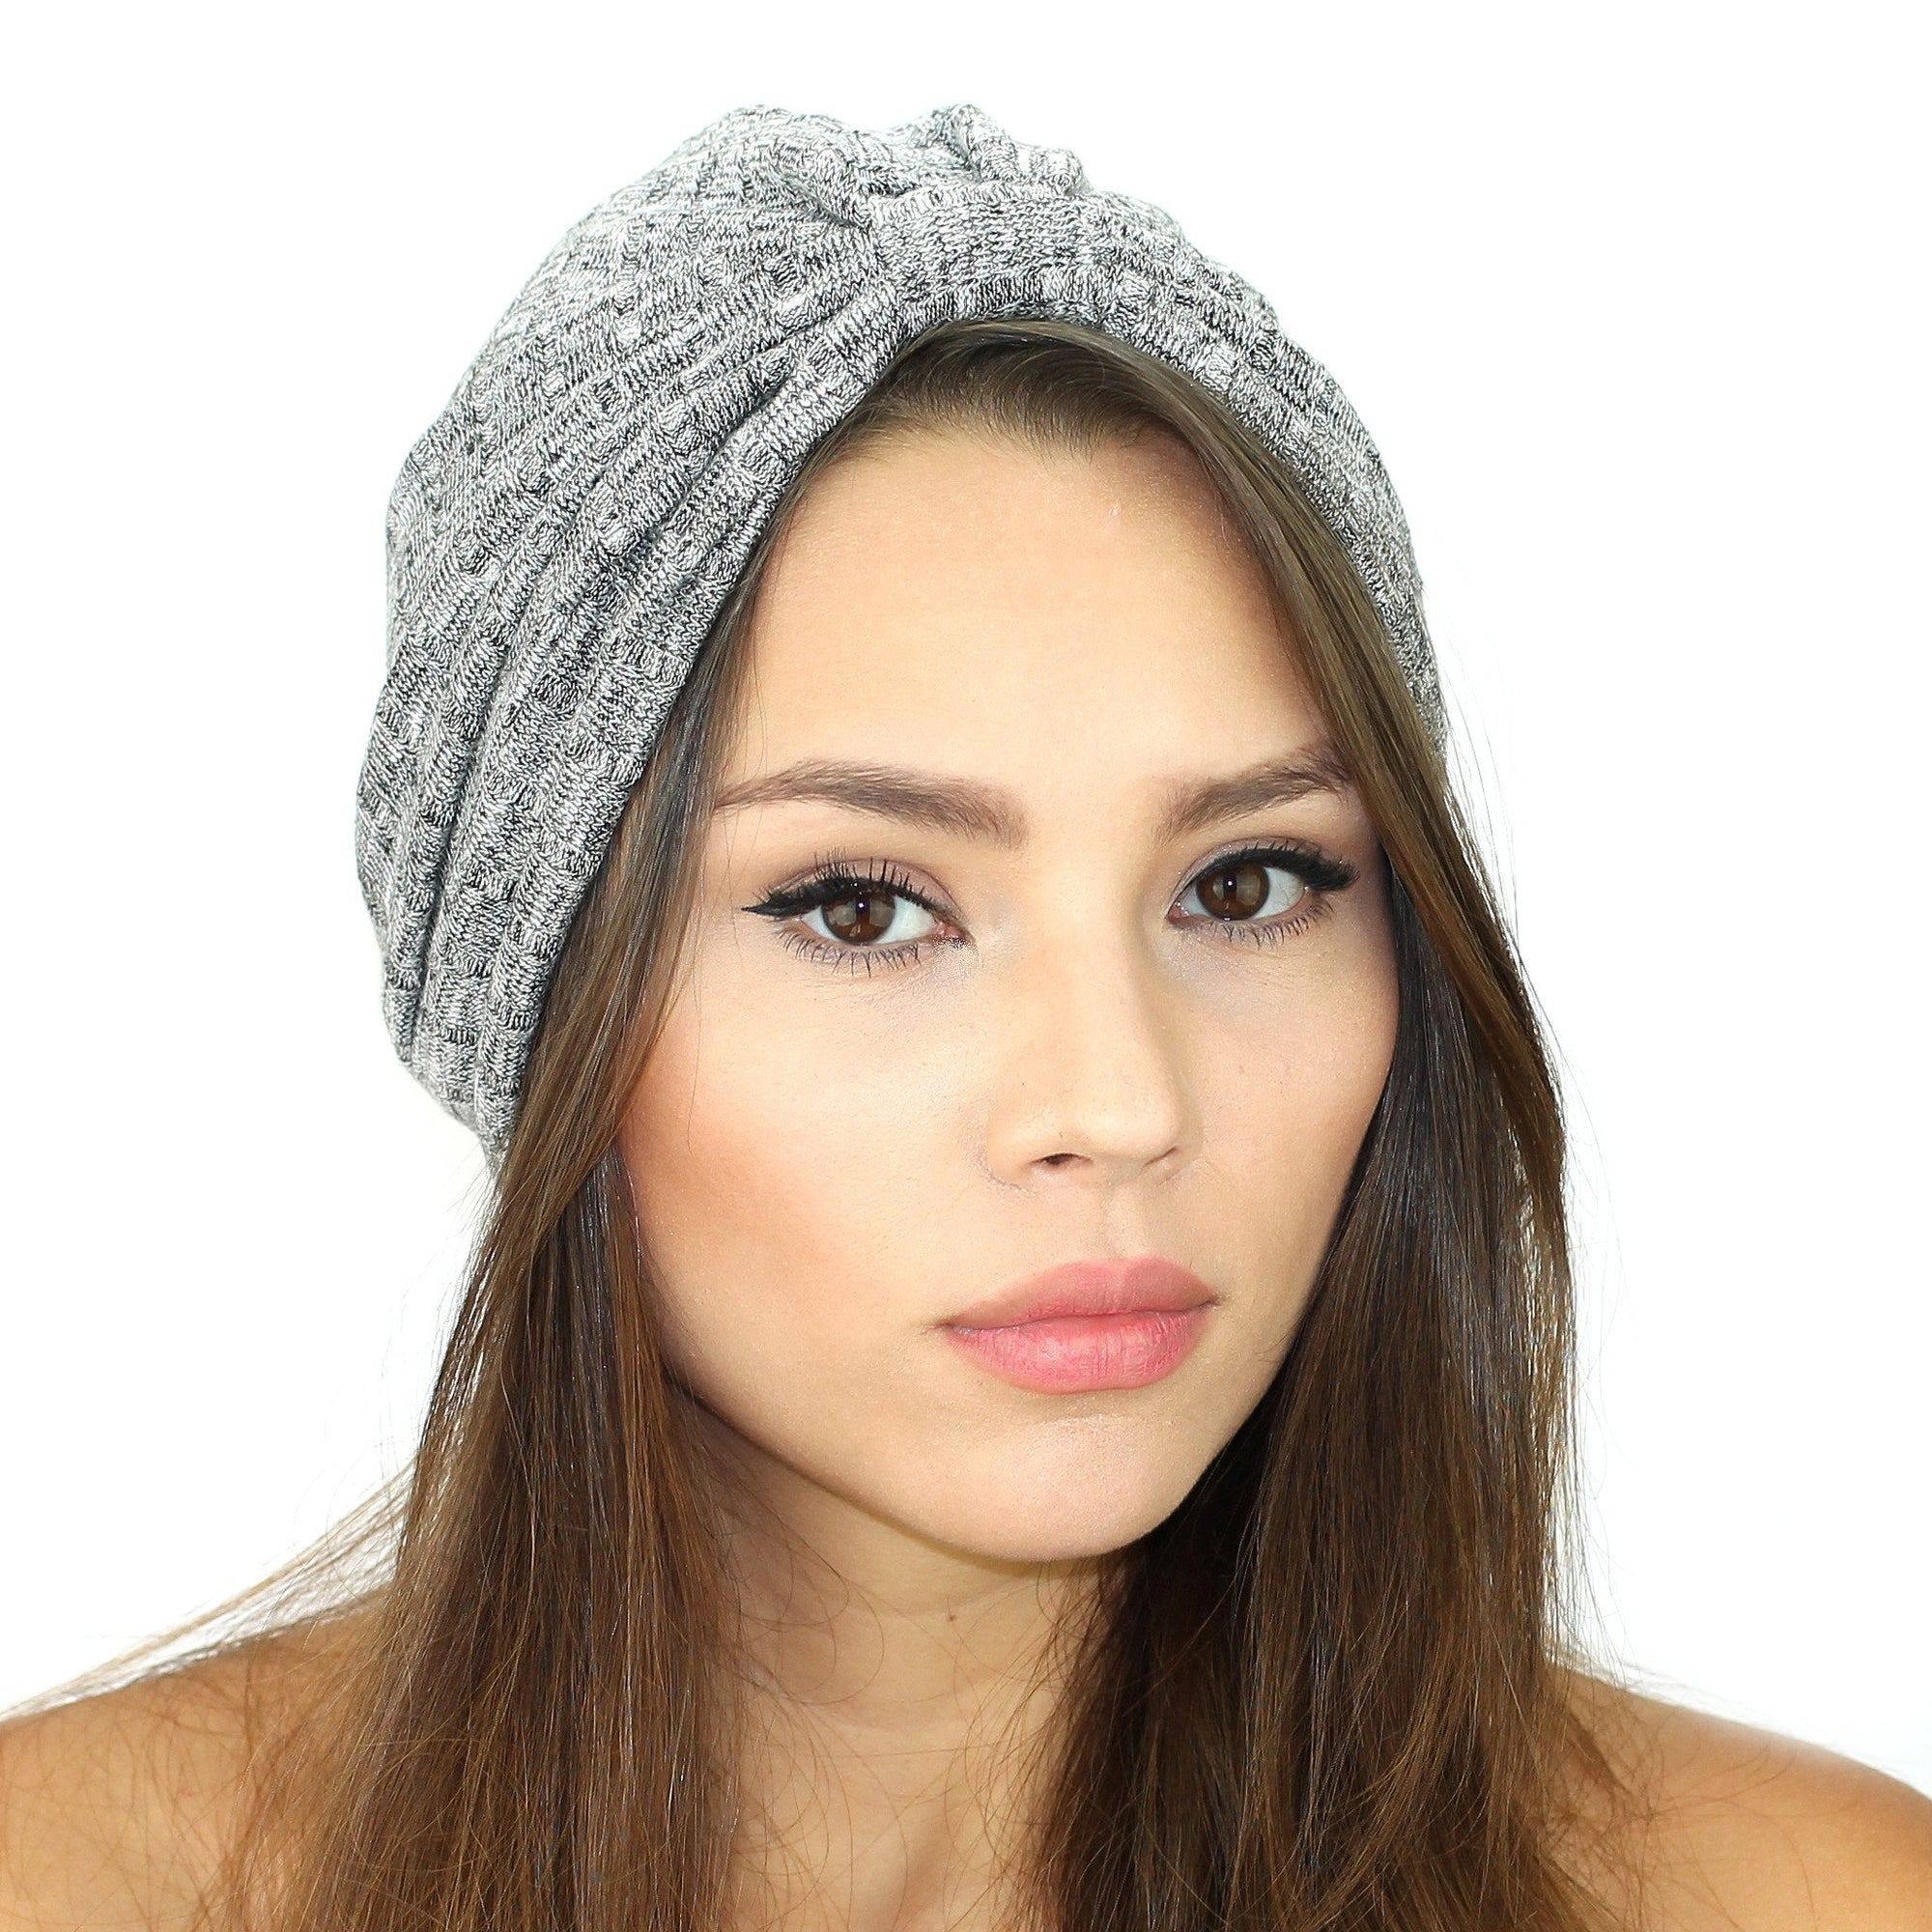 Rib Knit Sweater Turban - Miraposa